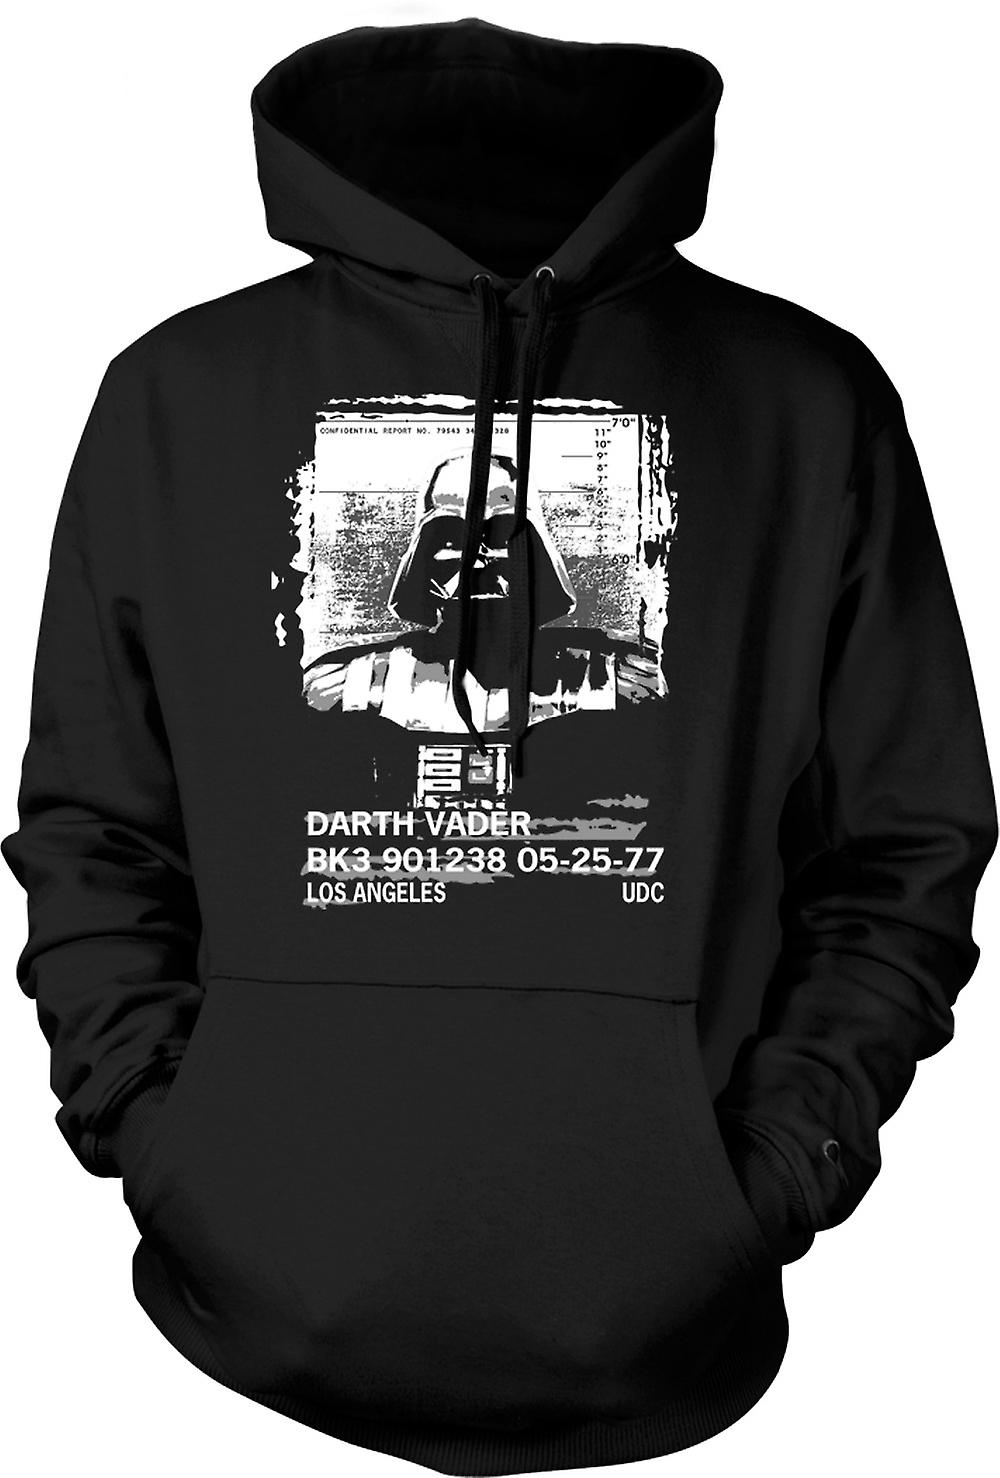 Mens Hoodie - Darth Vader Mug Shot - Star Wars